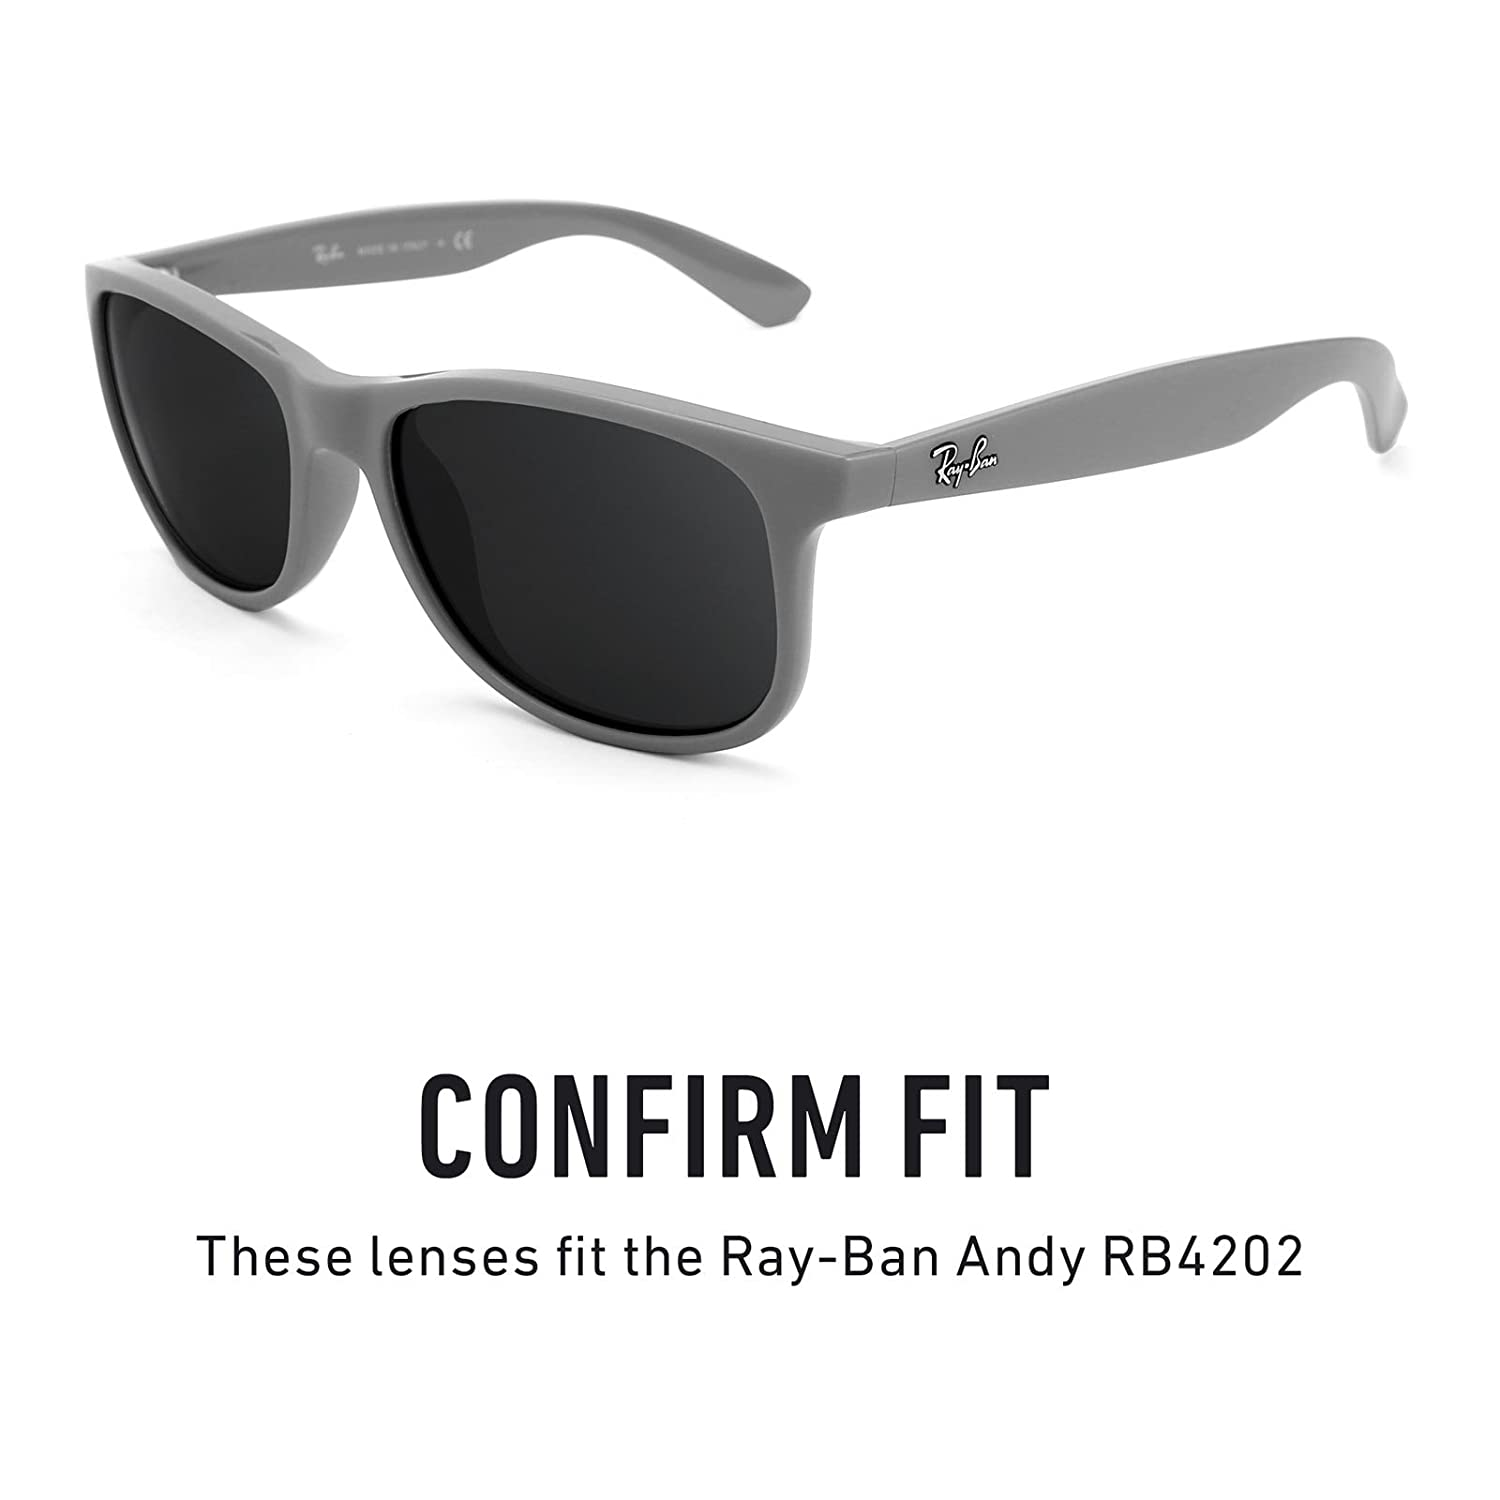 35927fb8e6bb Amazon.com: Revant Polarized Replacement Lenses for Ray-Ban Andy RB4202  Elite Black Chrome MirrorShield: Sports & Outdoors